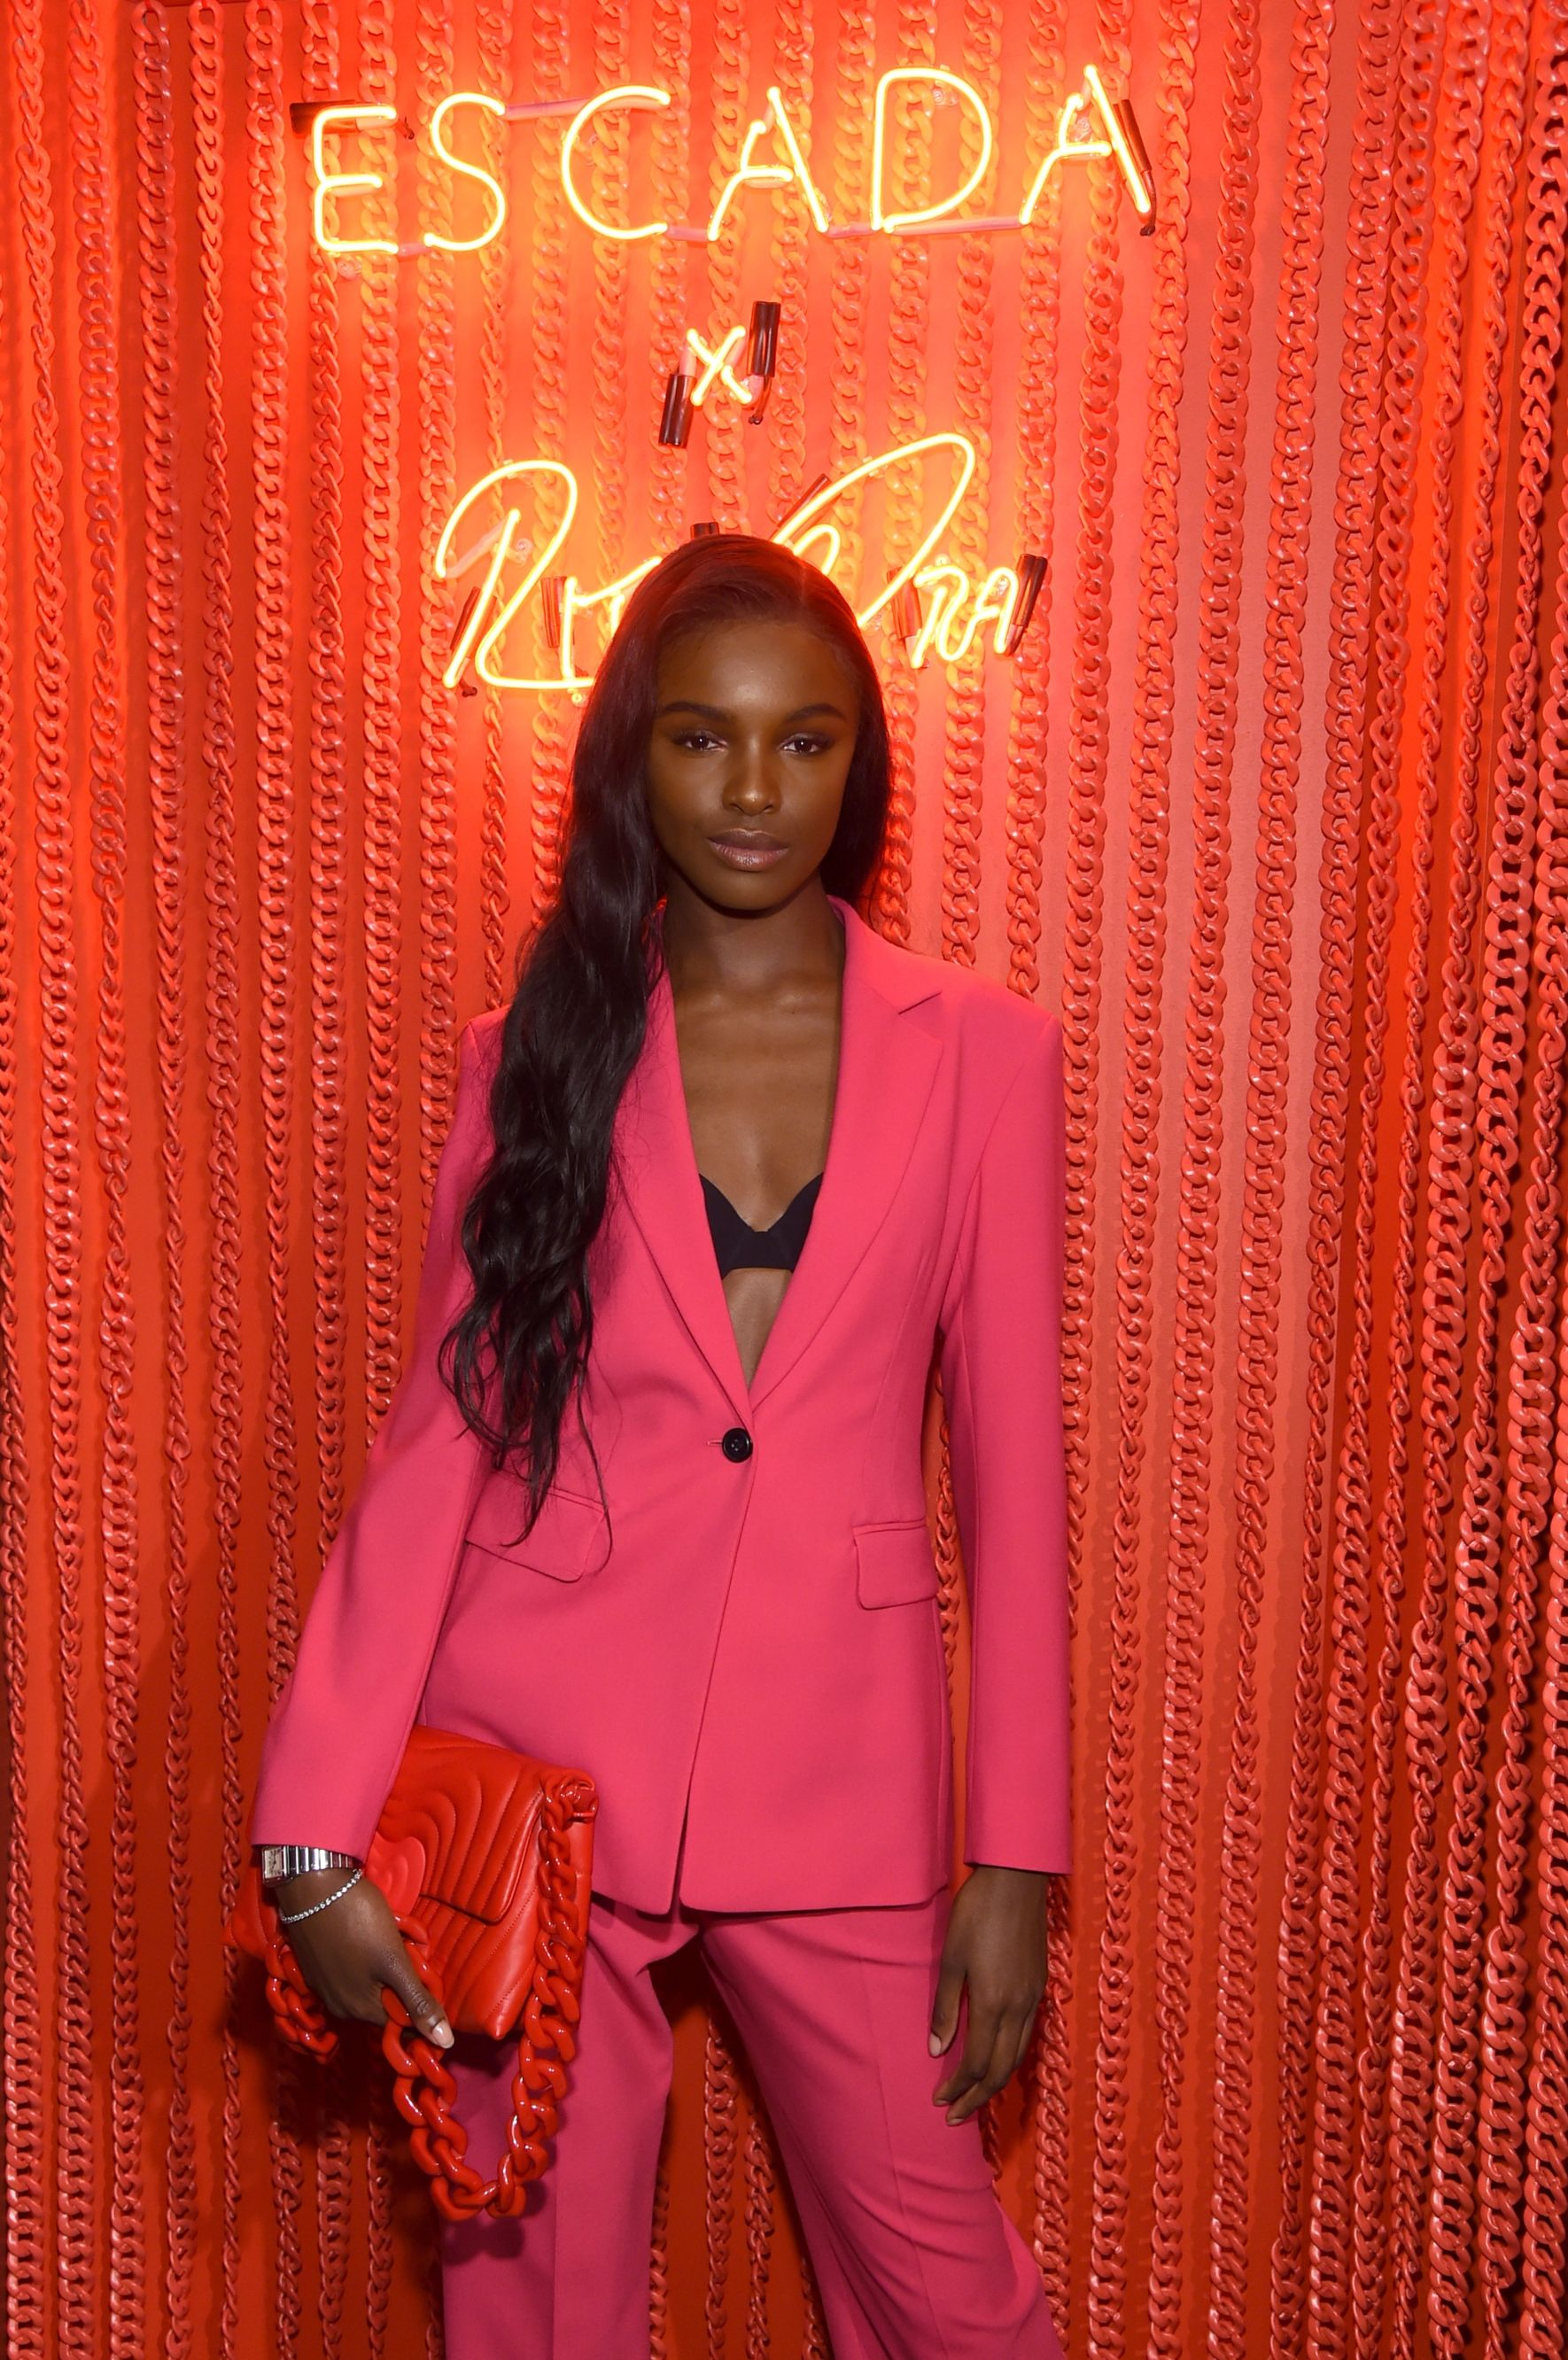 Leomie Anderson Leomie Anderson attends the launch of the Escada Heartbag by Rita Ora on March 27 New York City.